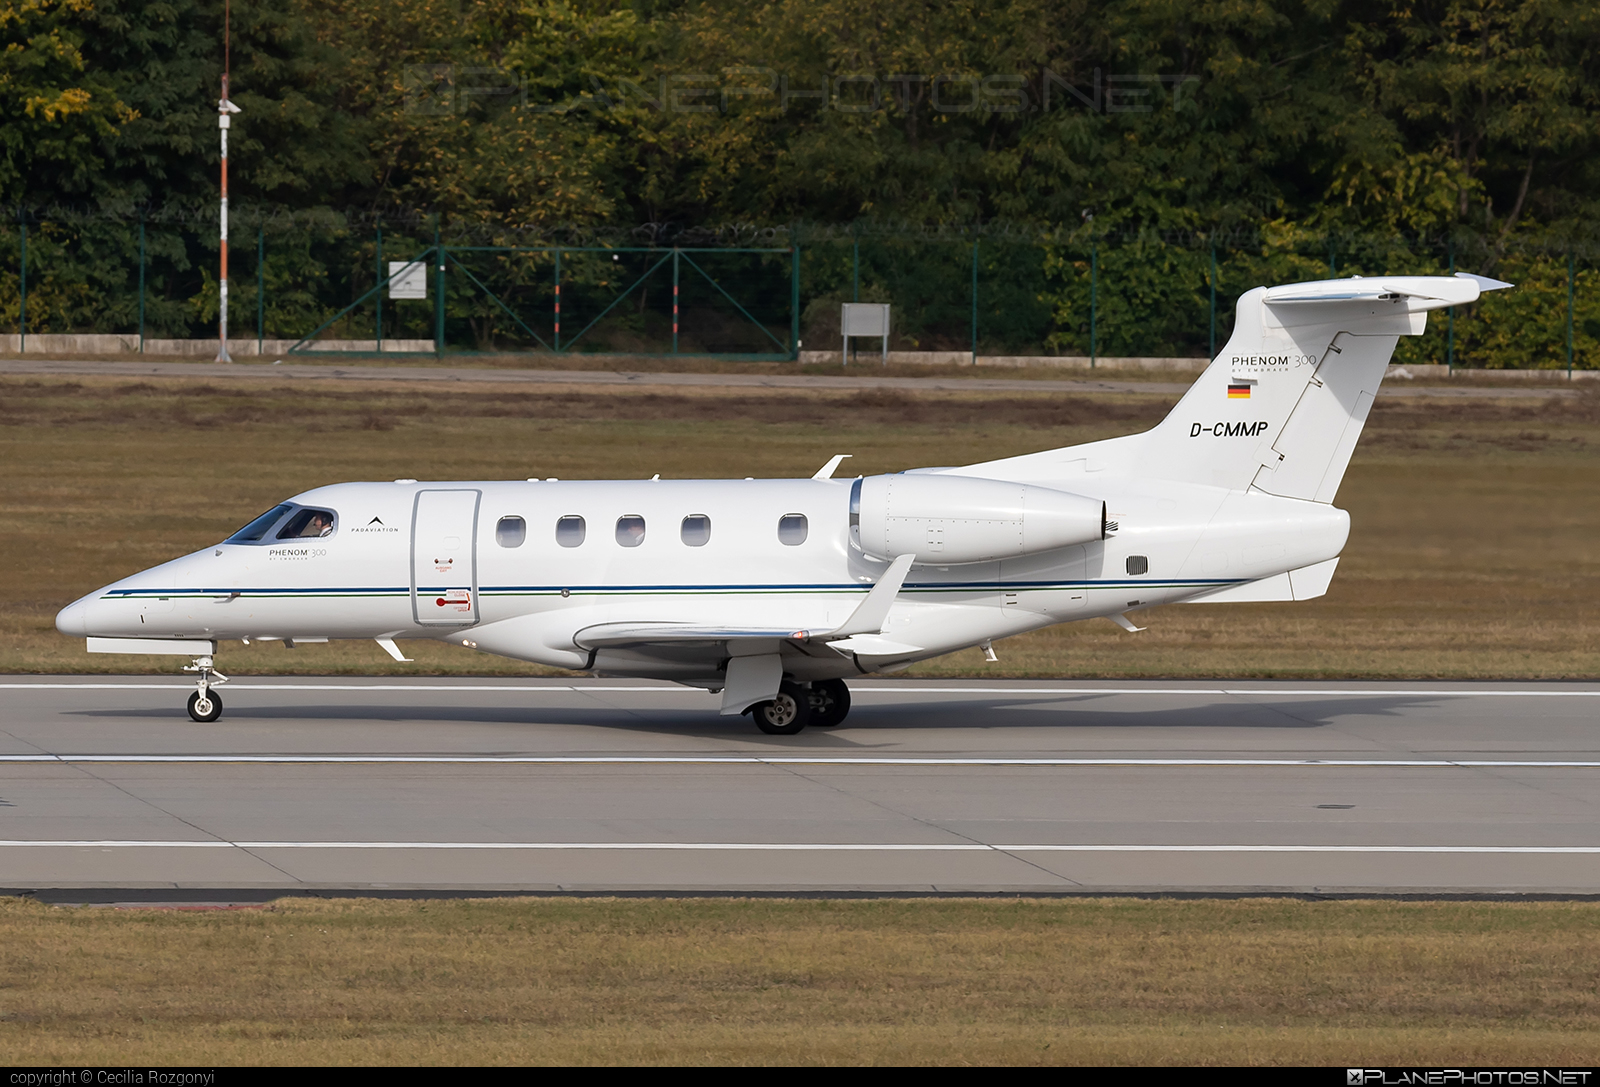 Embraer Phenom 300 (EMB-505) - D-CMMP operated by PADAVIATION #D-CMMP #FerencLisztIntl #emb505 #embraer #embraer505 #embraerphenom #embraerphenom300 #padaviation #phenom300